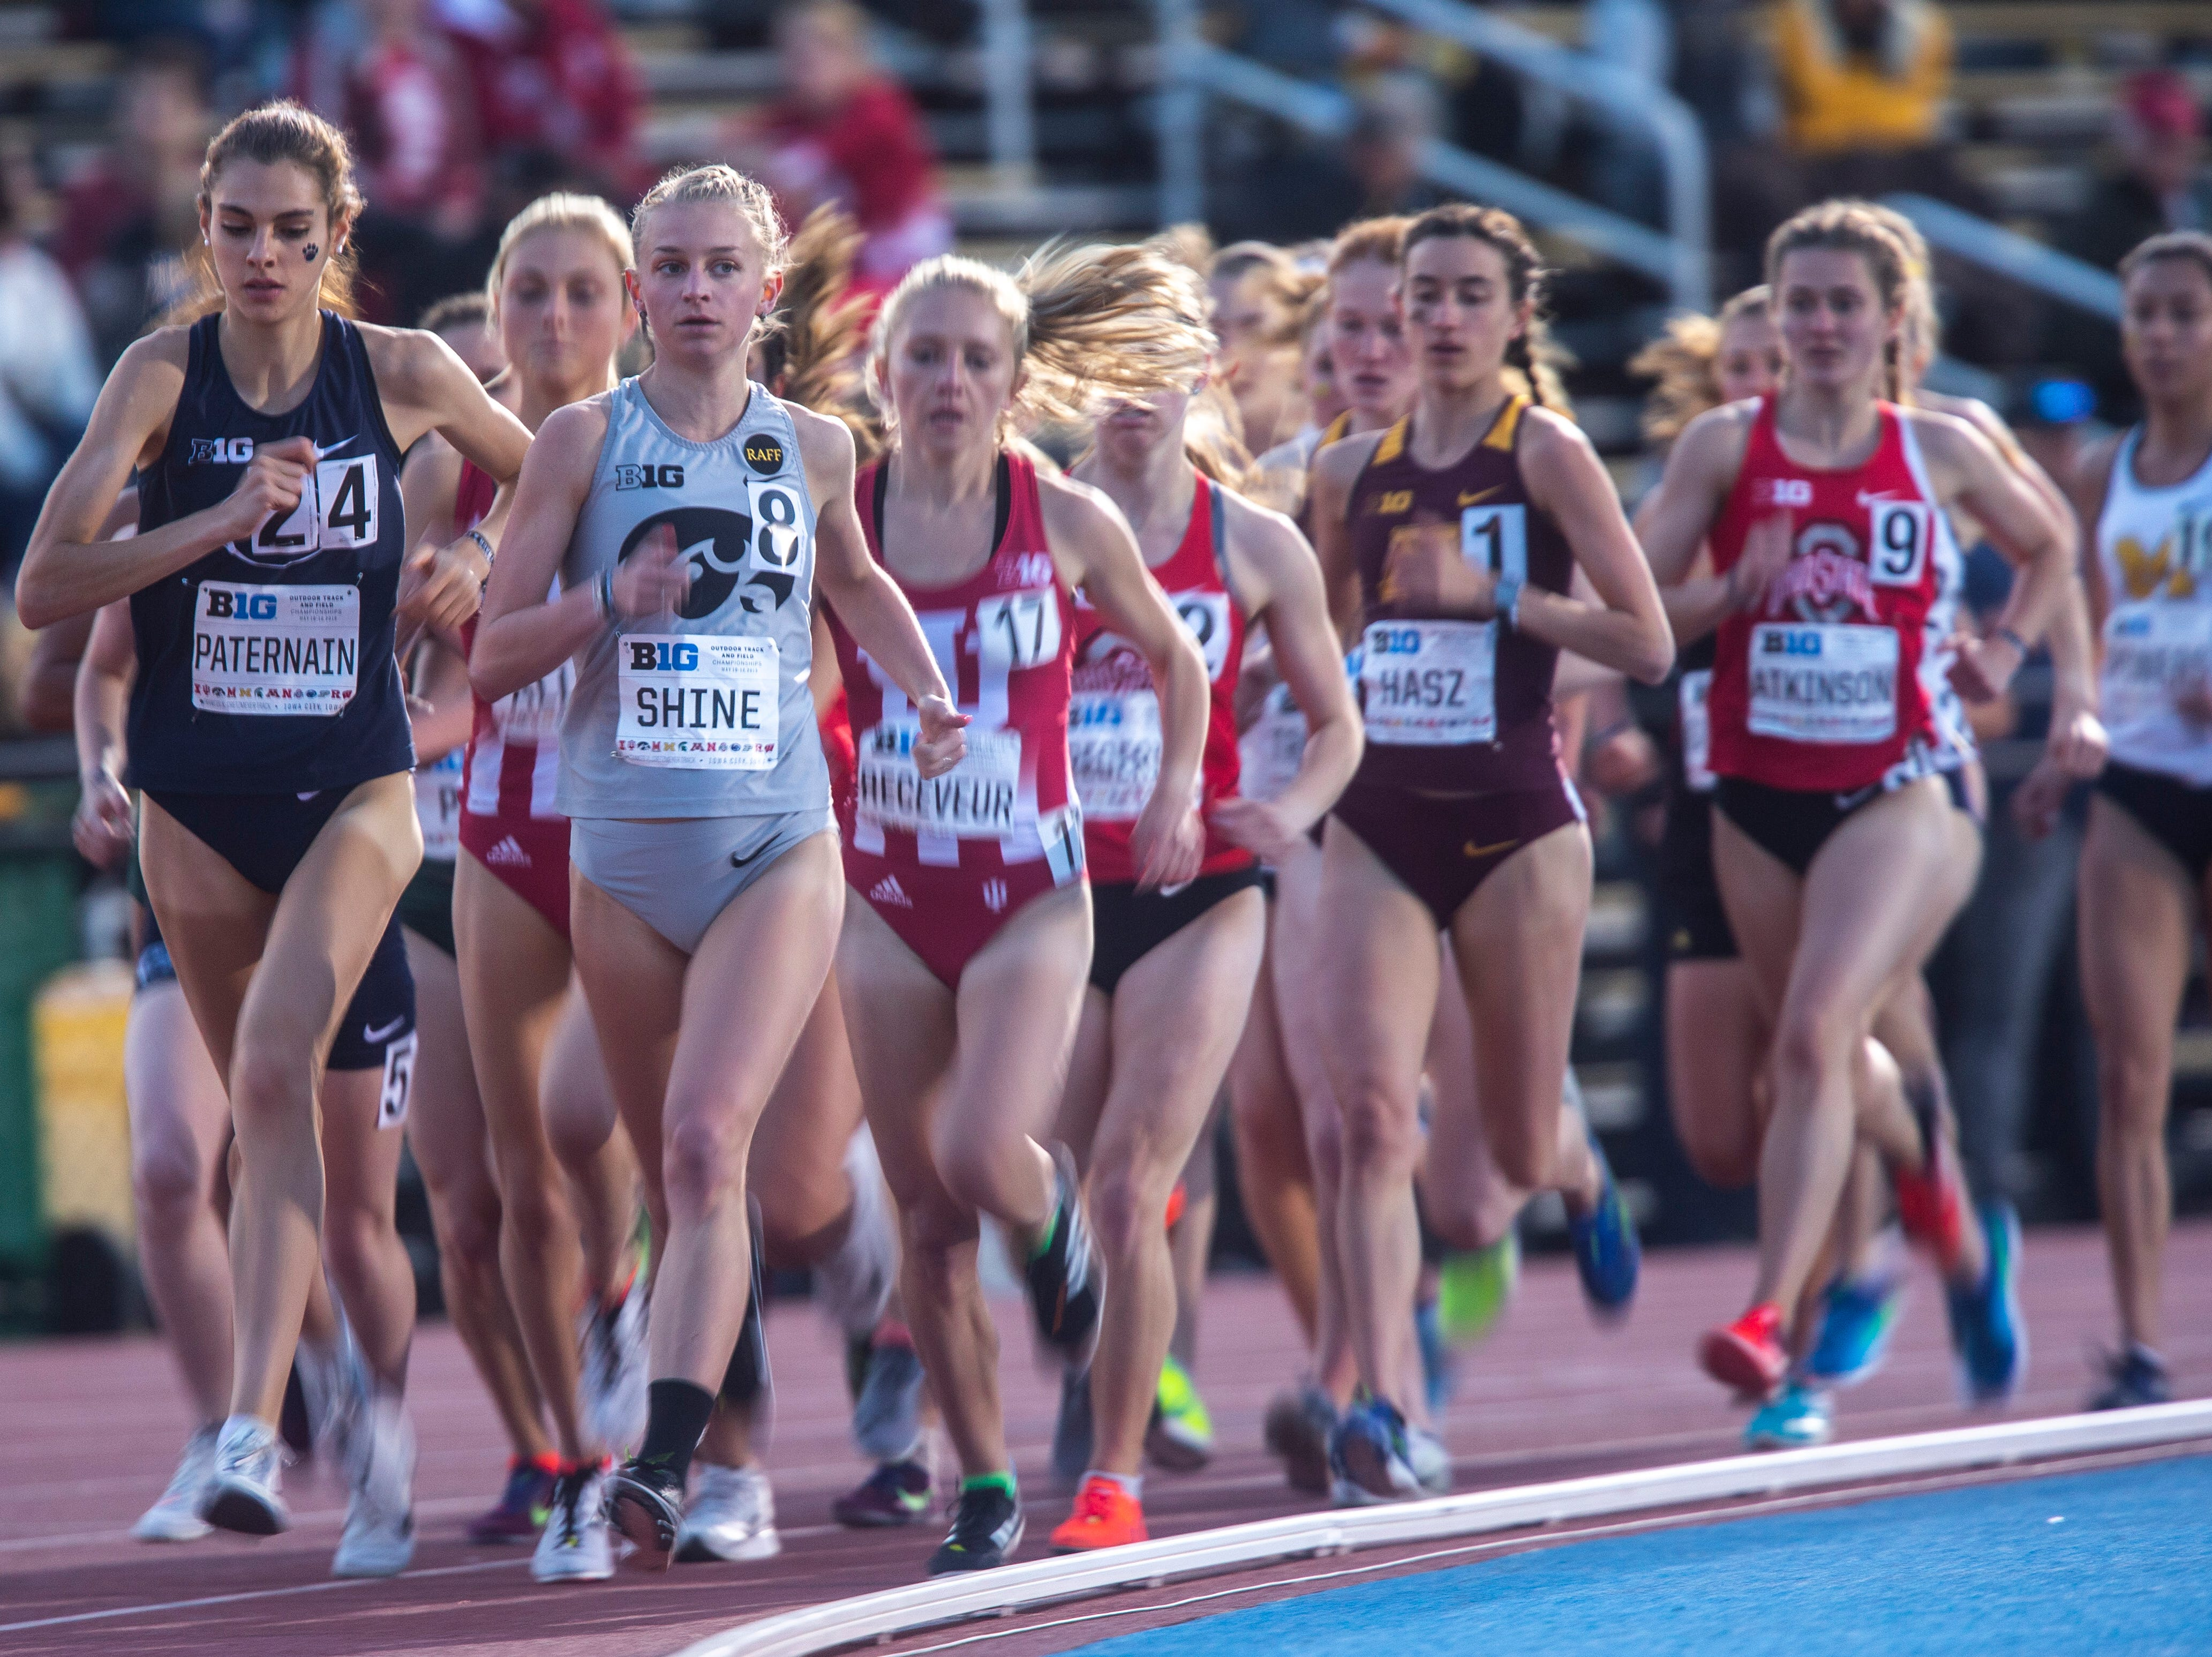 Iowa senior Andrea Shine (8) leads the pack while competing in the 10,000 meters during the first night of Big Ten track and field outdoor championships, Friday, May 10, 2019, at Francis X. Cretzmeyer Track on the University of Iowa campus in Iowa City, Iowa. Indiana senior Margaret Allen finished with a time of 33:08.59.